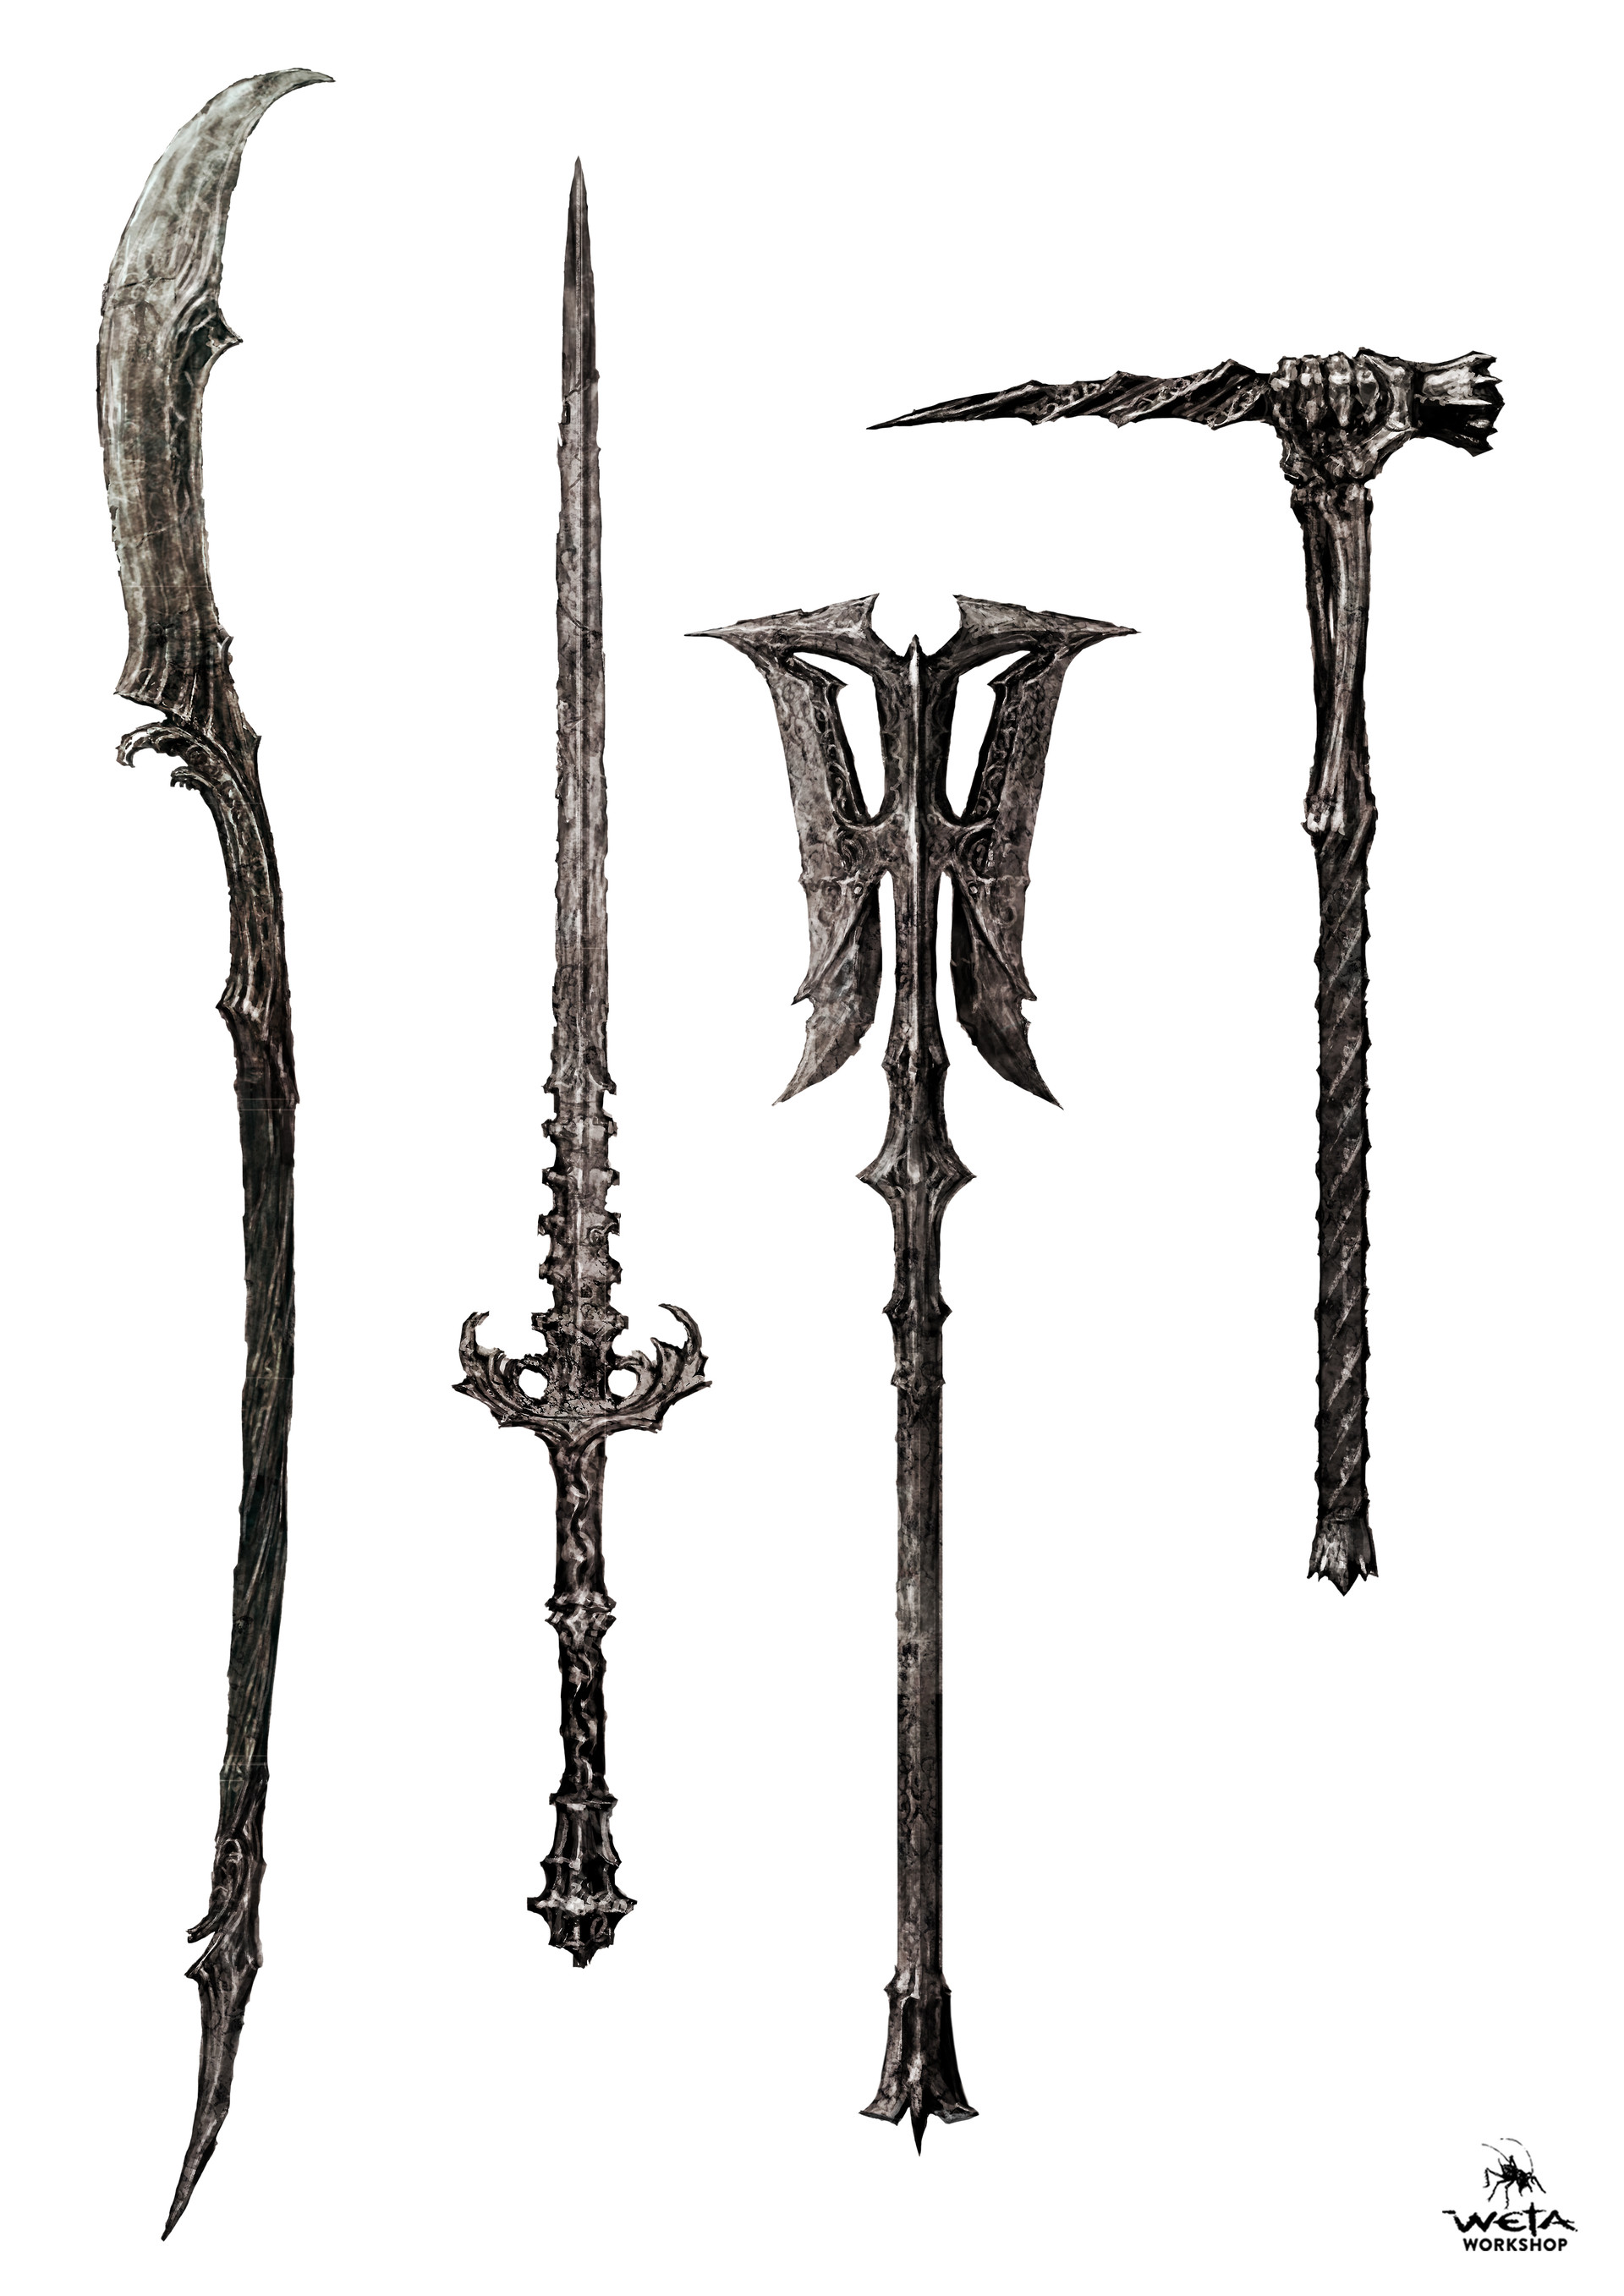 Ringwraith Weapons - Artist: Nick Keller